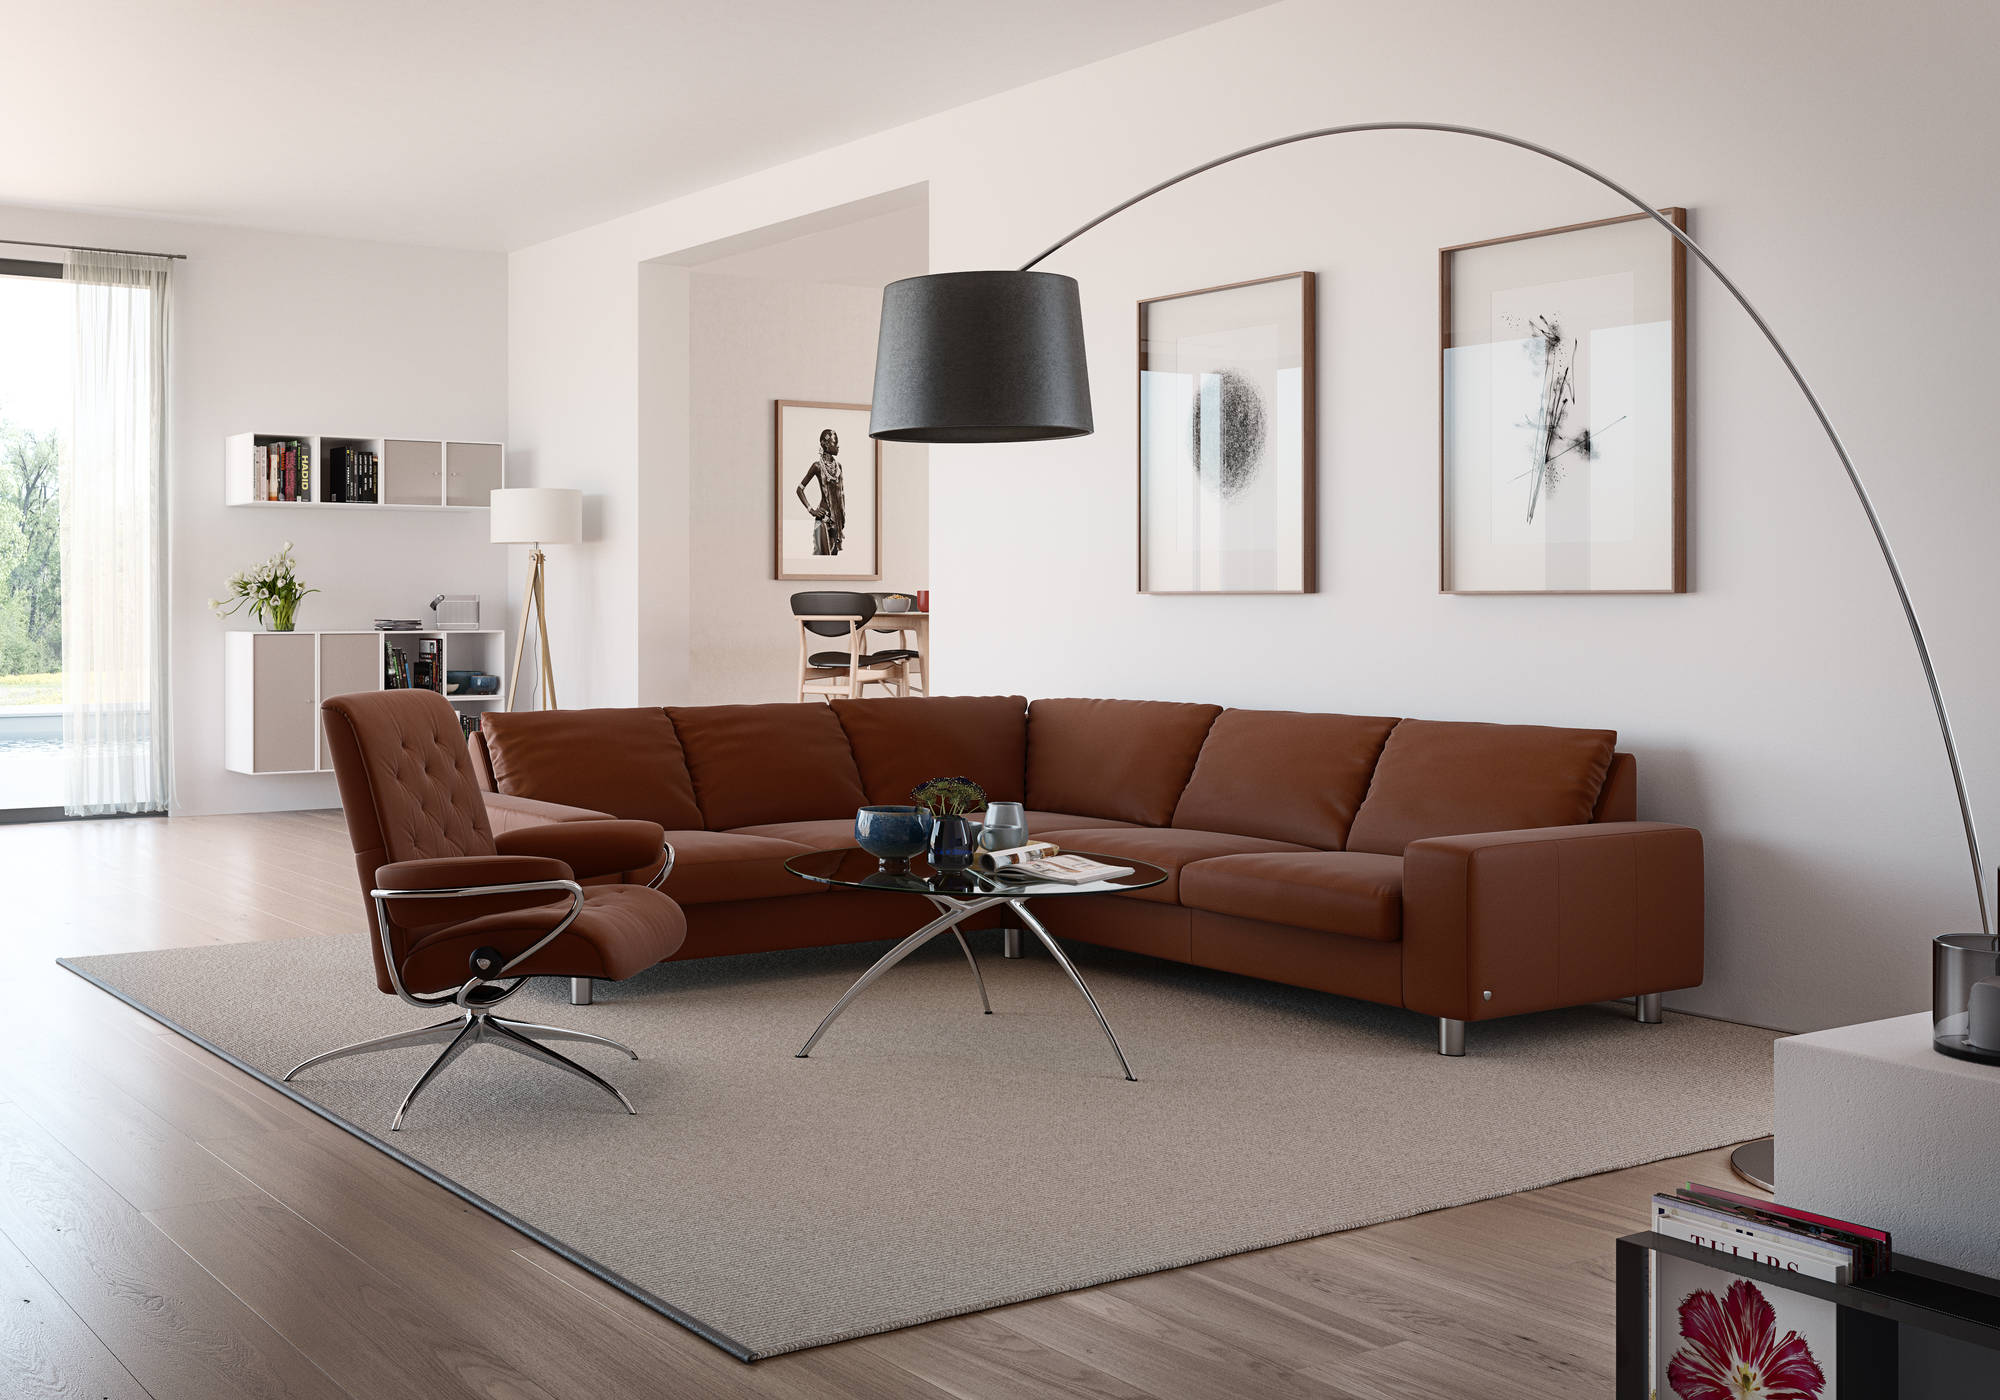 Decorating With Brown Leather Furniture